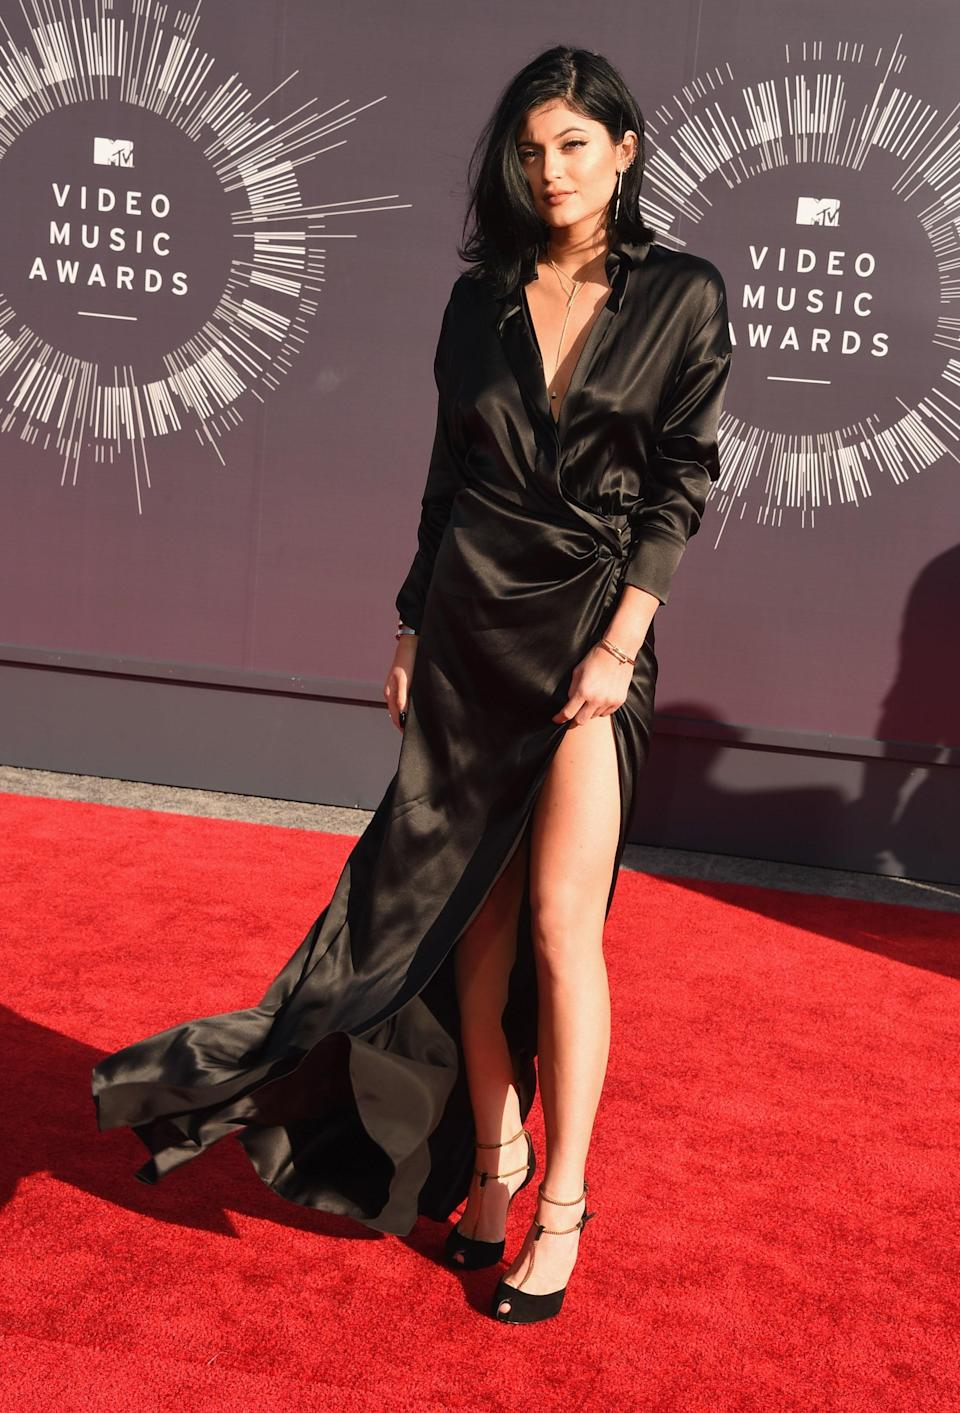 The Kardashian-Jenner family made a big splash at the awards show in 2014. Kylie attended with her sisters in red carpet mainstay, Alexandre Vauthier.